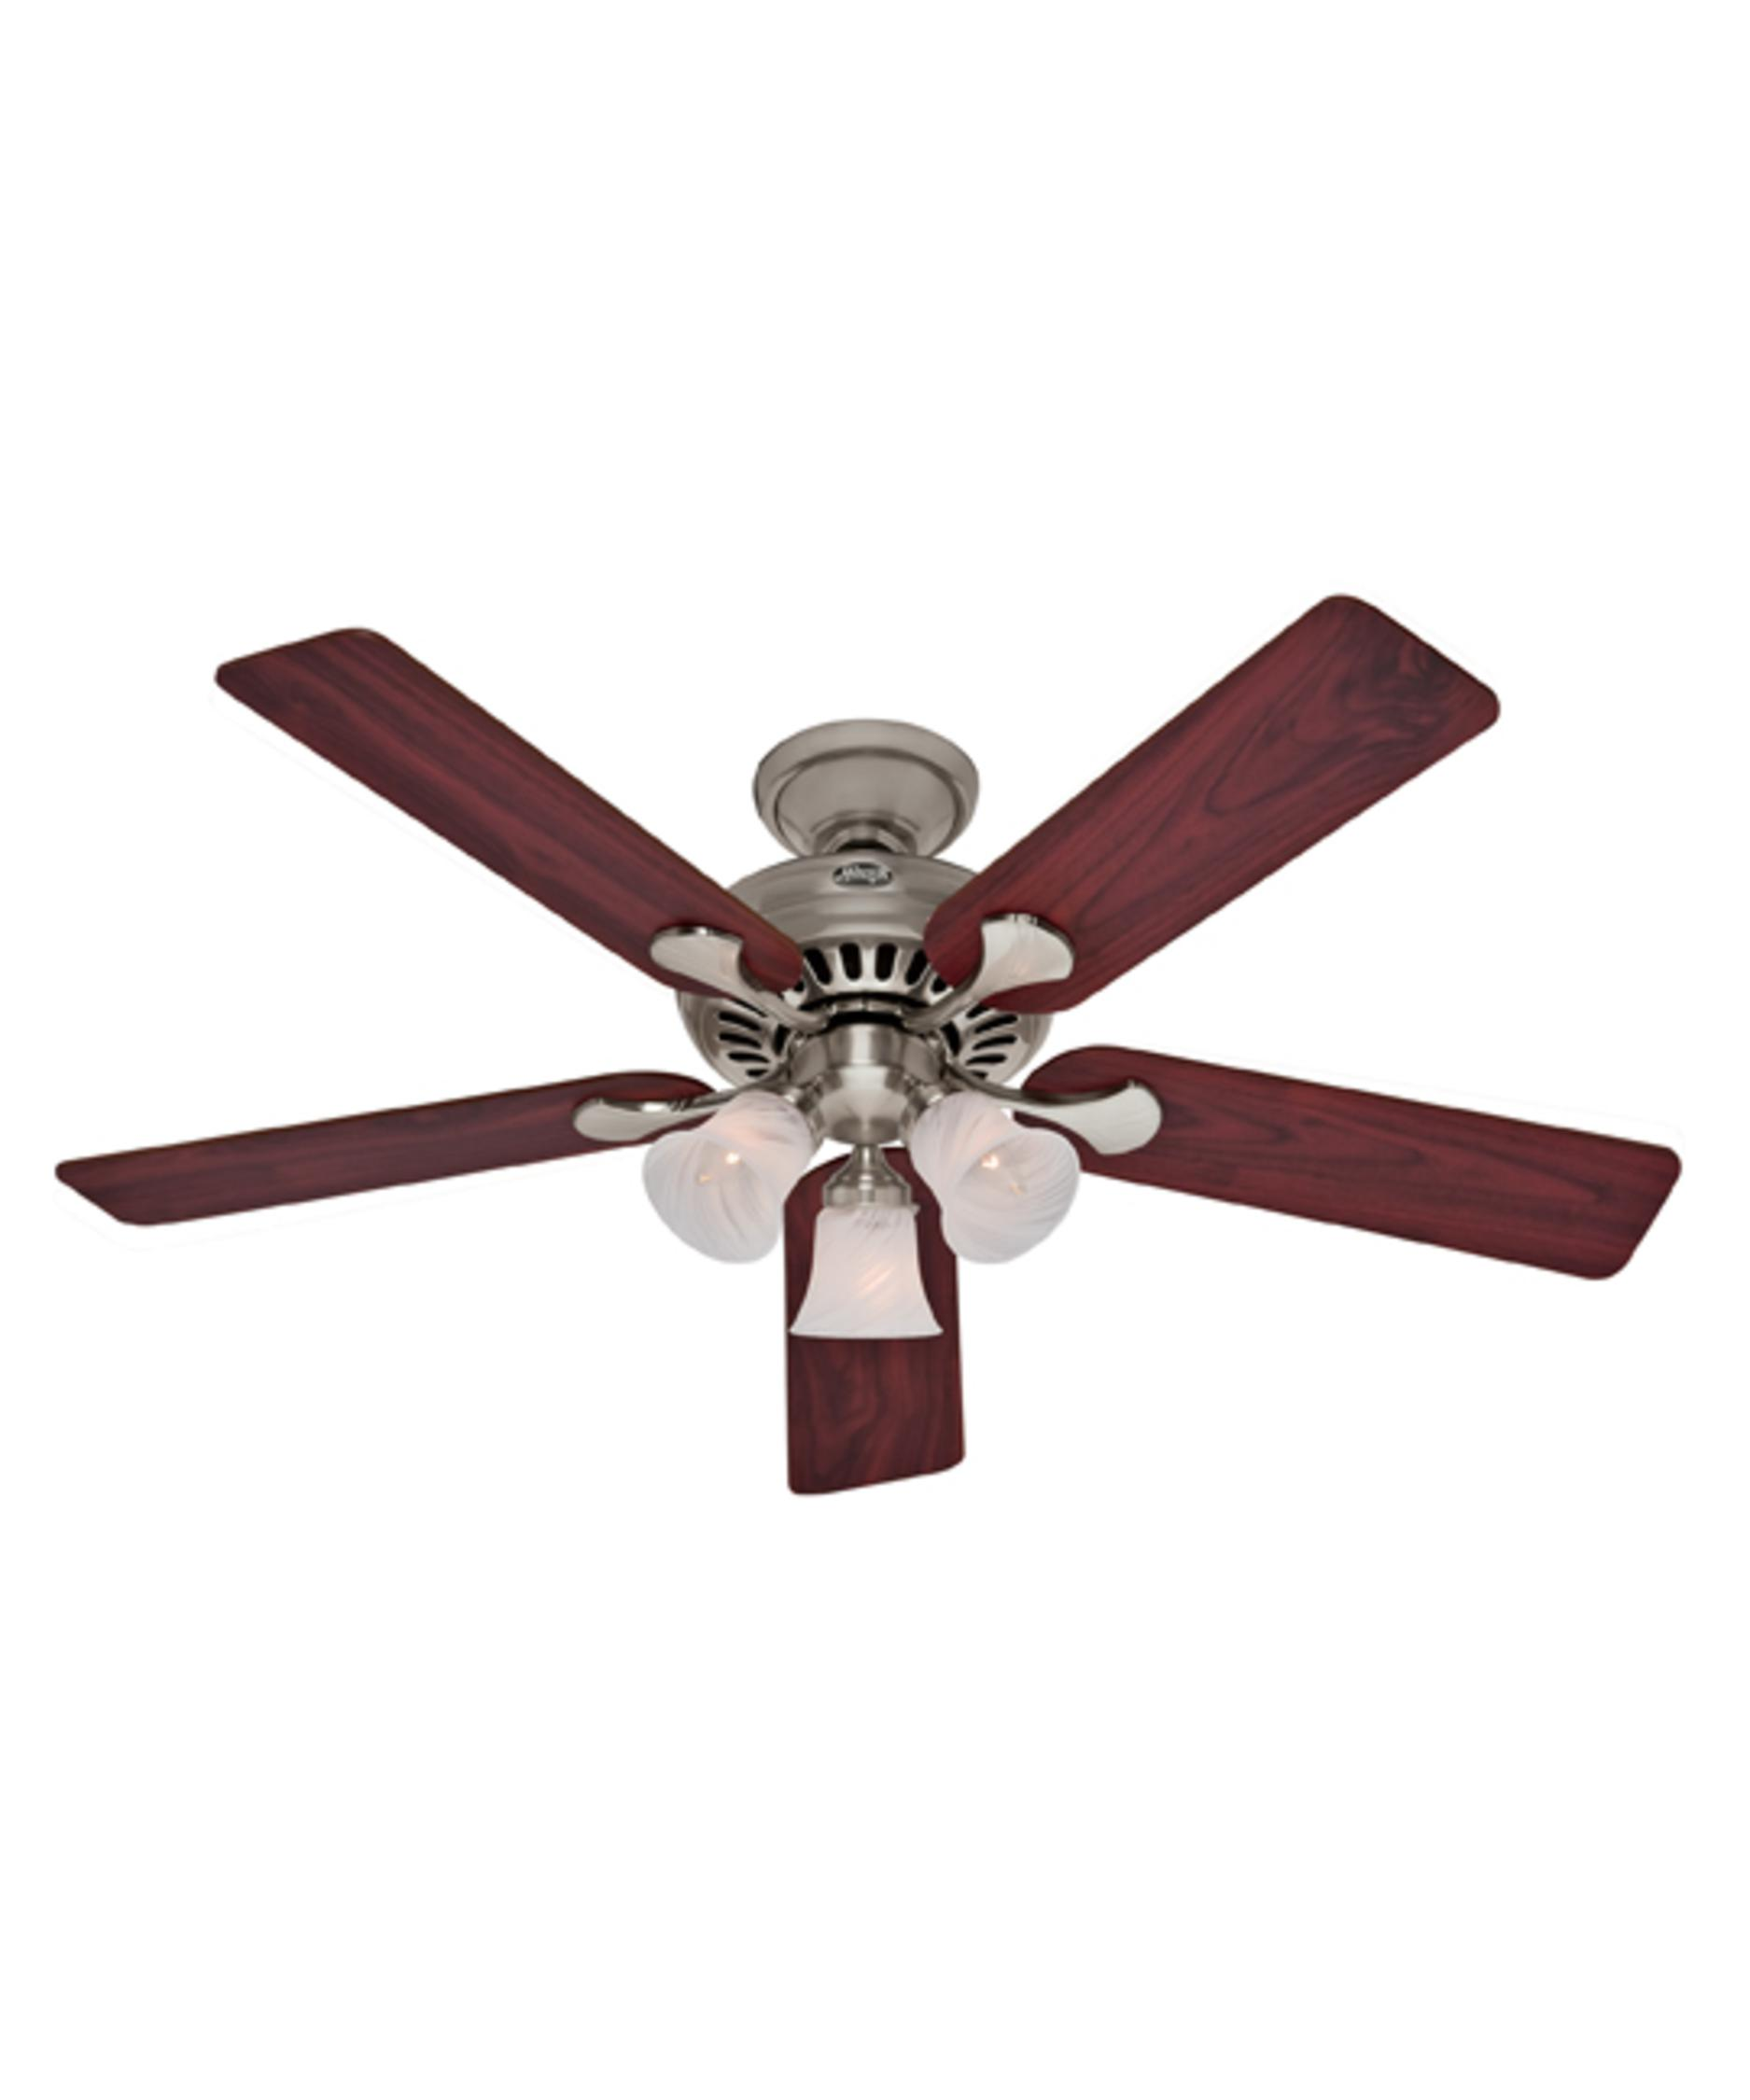 Murray Feiss Ceiling Fan Light Kit: Hunter Fan Summer Breeze Plus 52 Inch Ceiling Fan With